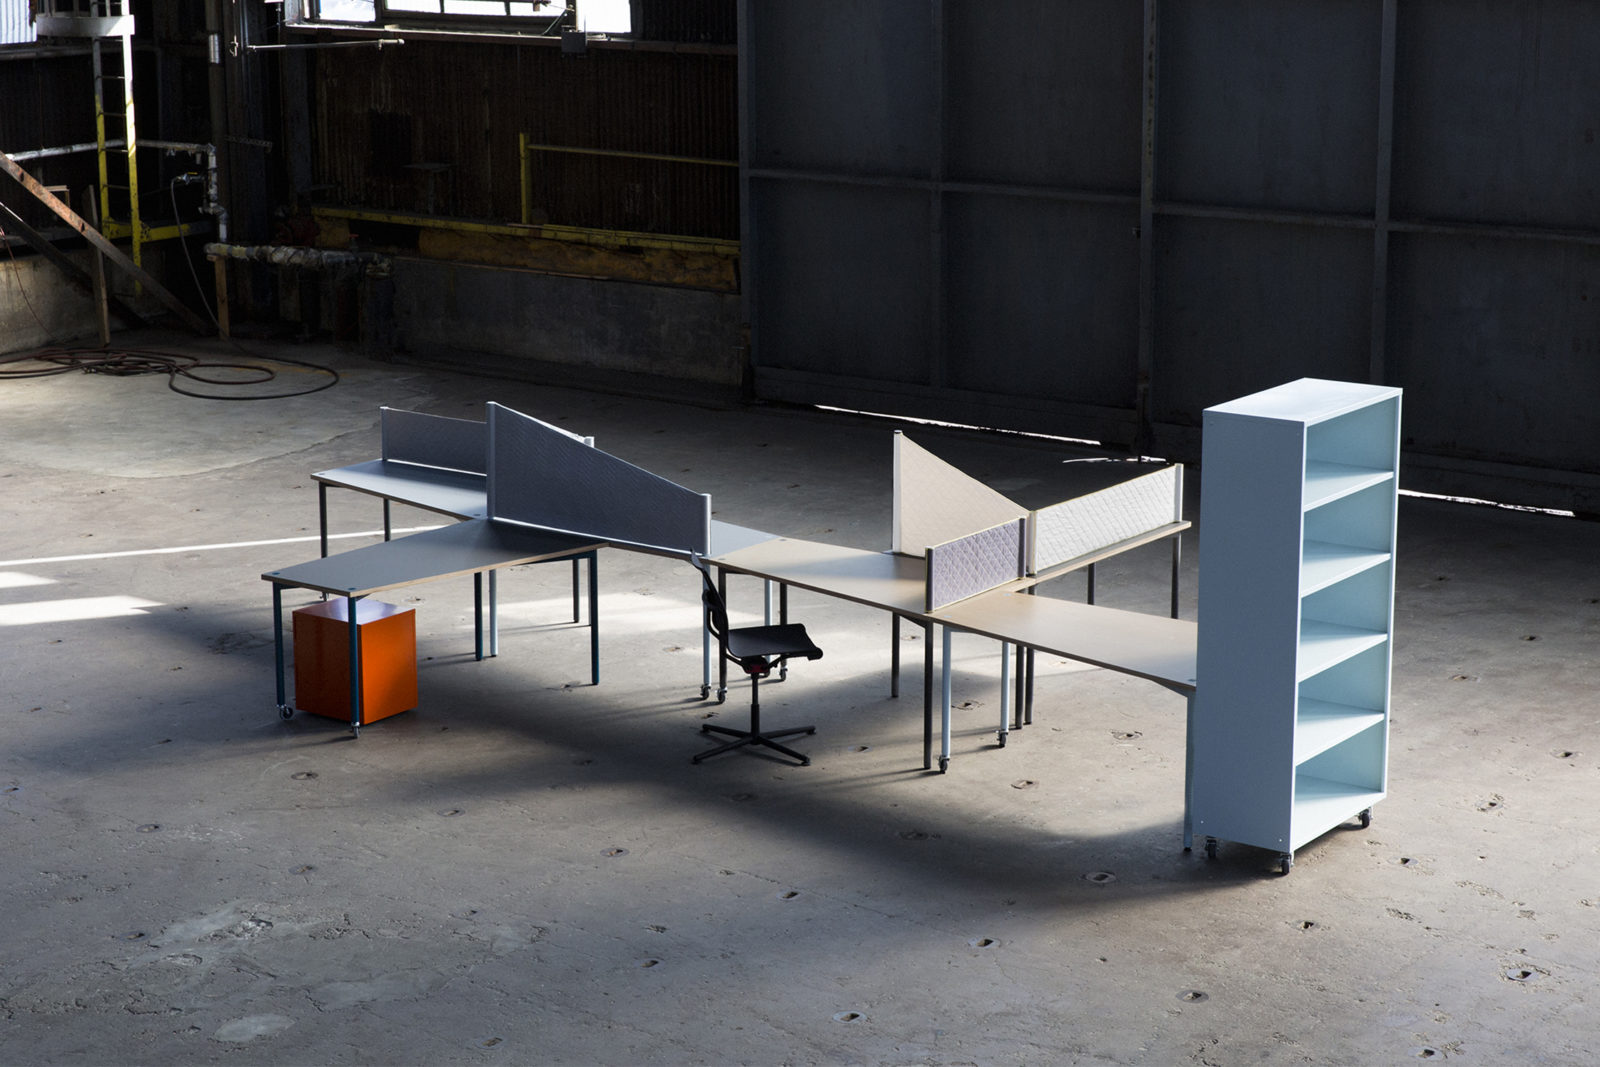 (EN) A perfect square cut in two: Designed to adapt dynamically to individual work styles and needs, the one-meter trapezoidal table system SQUARE, designed for HEARTWORK NY, accommodates the full spectrum of evolving live and work scenarios. Alone or in multiples, SQUARE inspires limitless configurations.